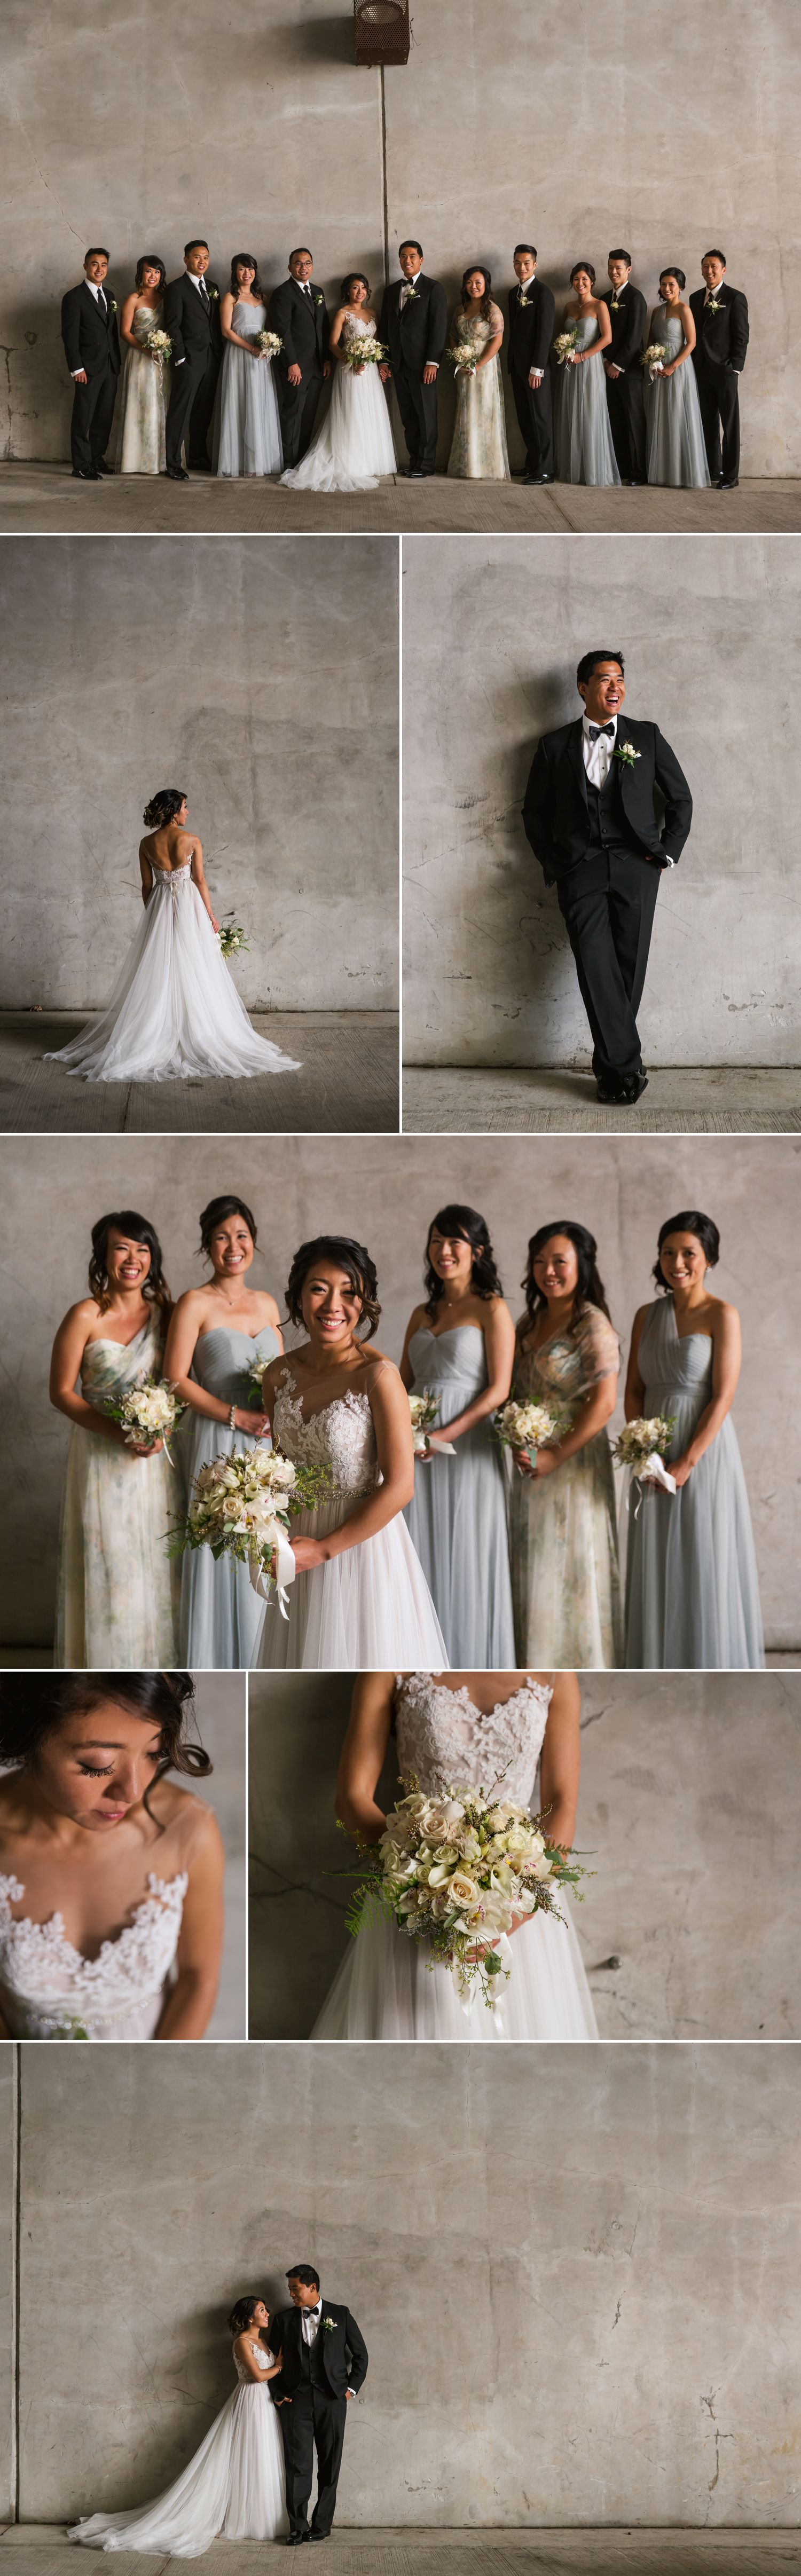 Portraits of the bride and groom and their wedding party taken near the Rideau Canal in downtown Ottawa